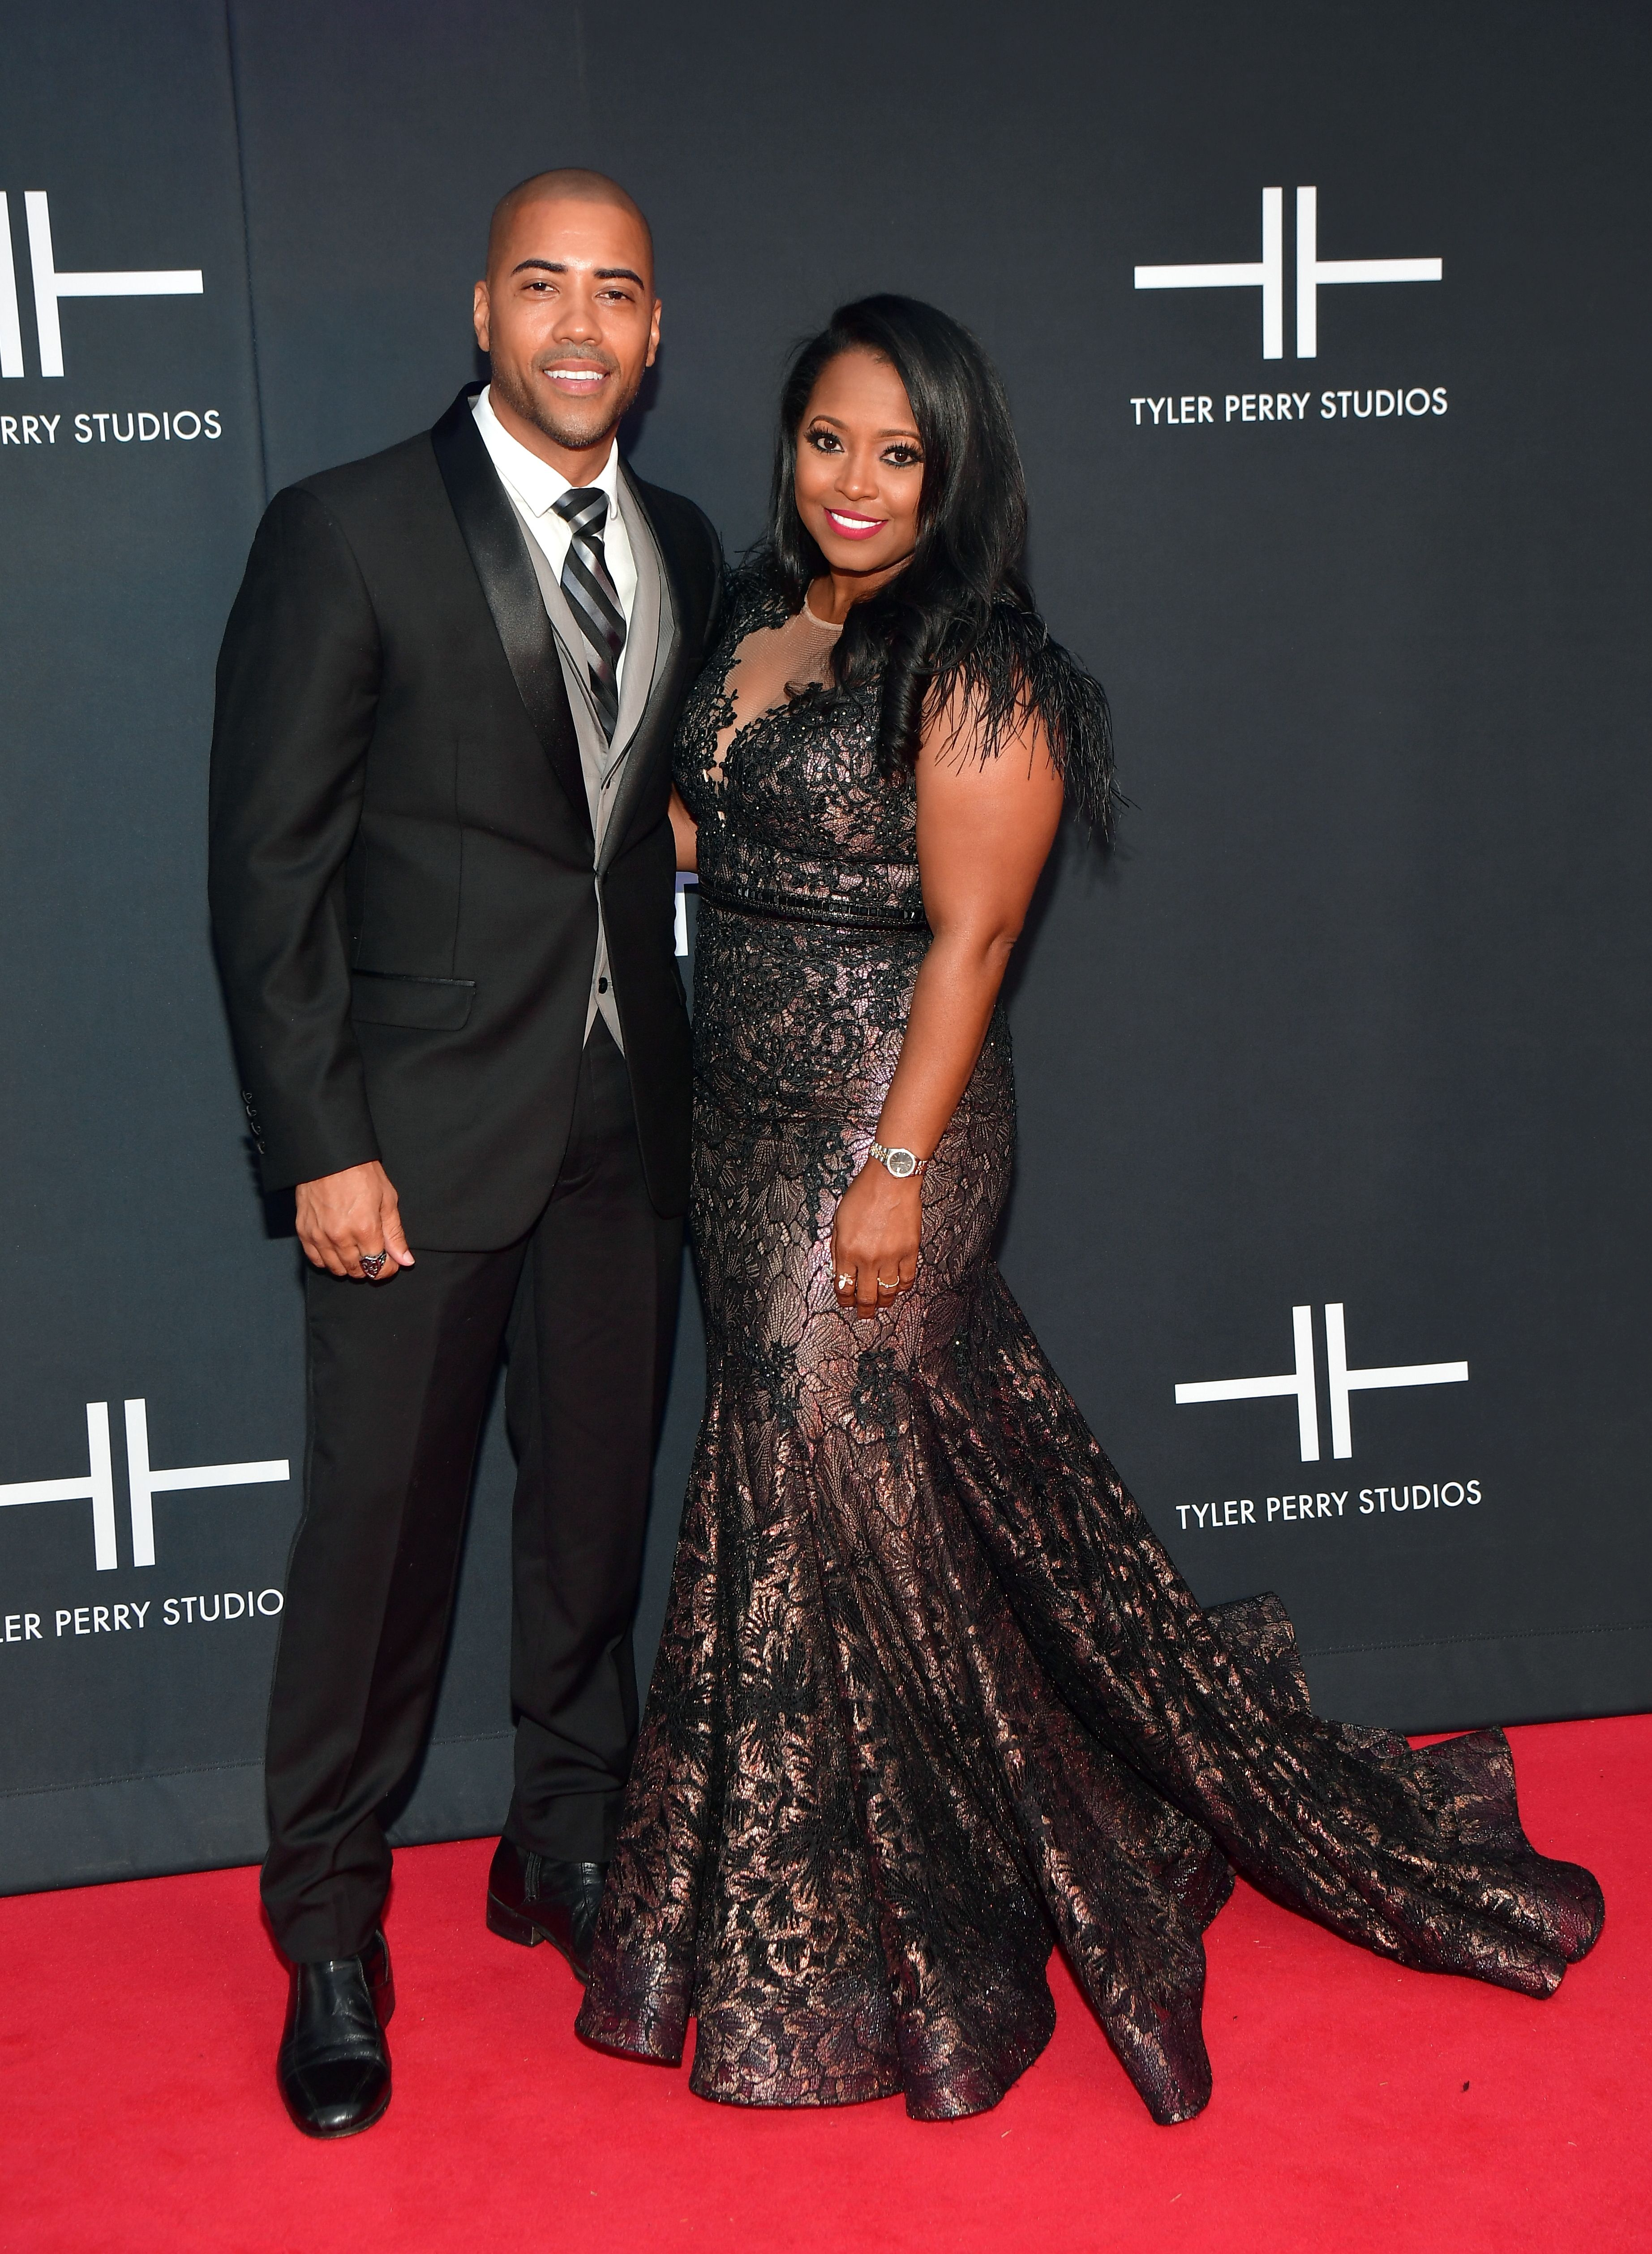 Brad James and Keshia Knight Pulliam during Tyler Perry Studios' Grand Opening Gala - Arrivals at Tyler Perry Studios on October 5, 2019 | Photo: Getty Images